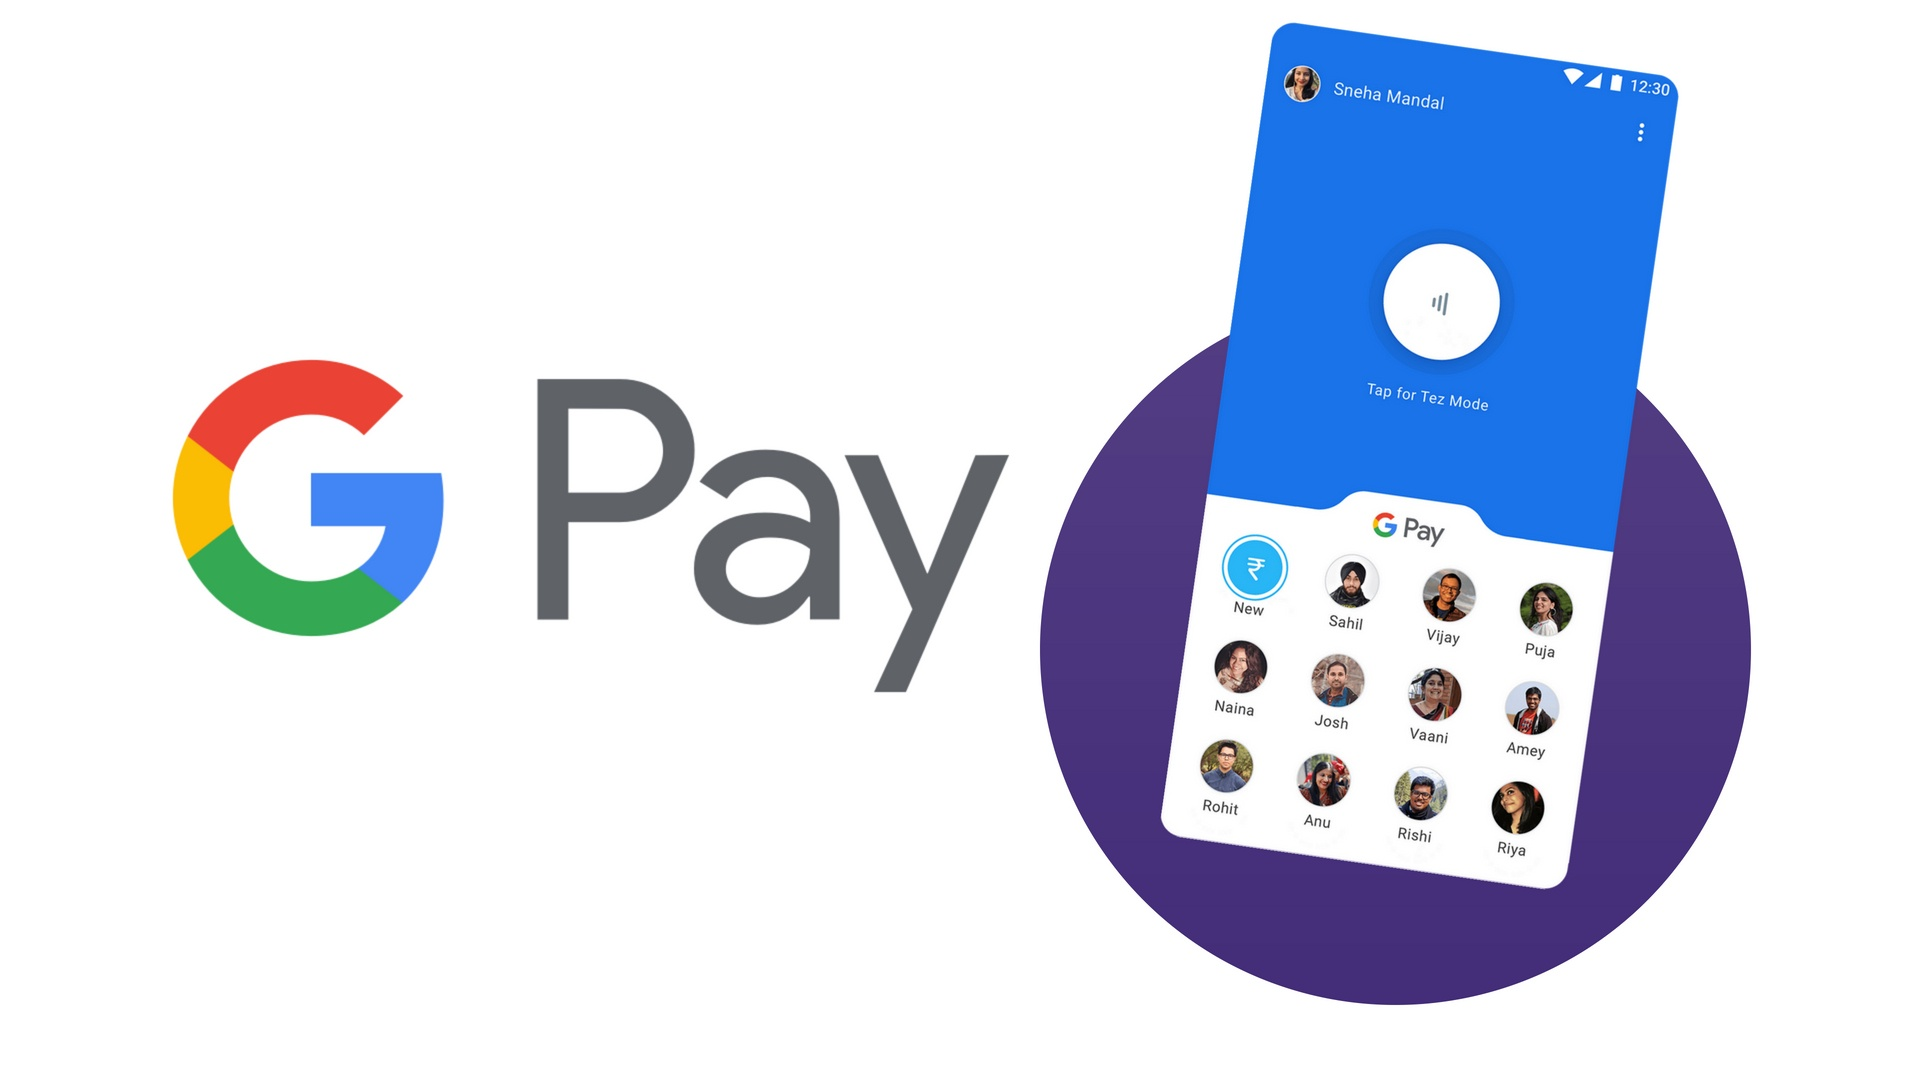 Google Tez is Now Google Pay, New Features Include Instant Bank Loans